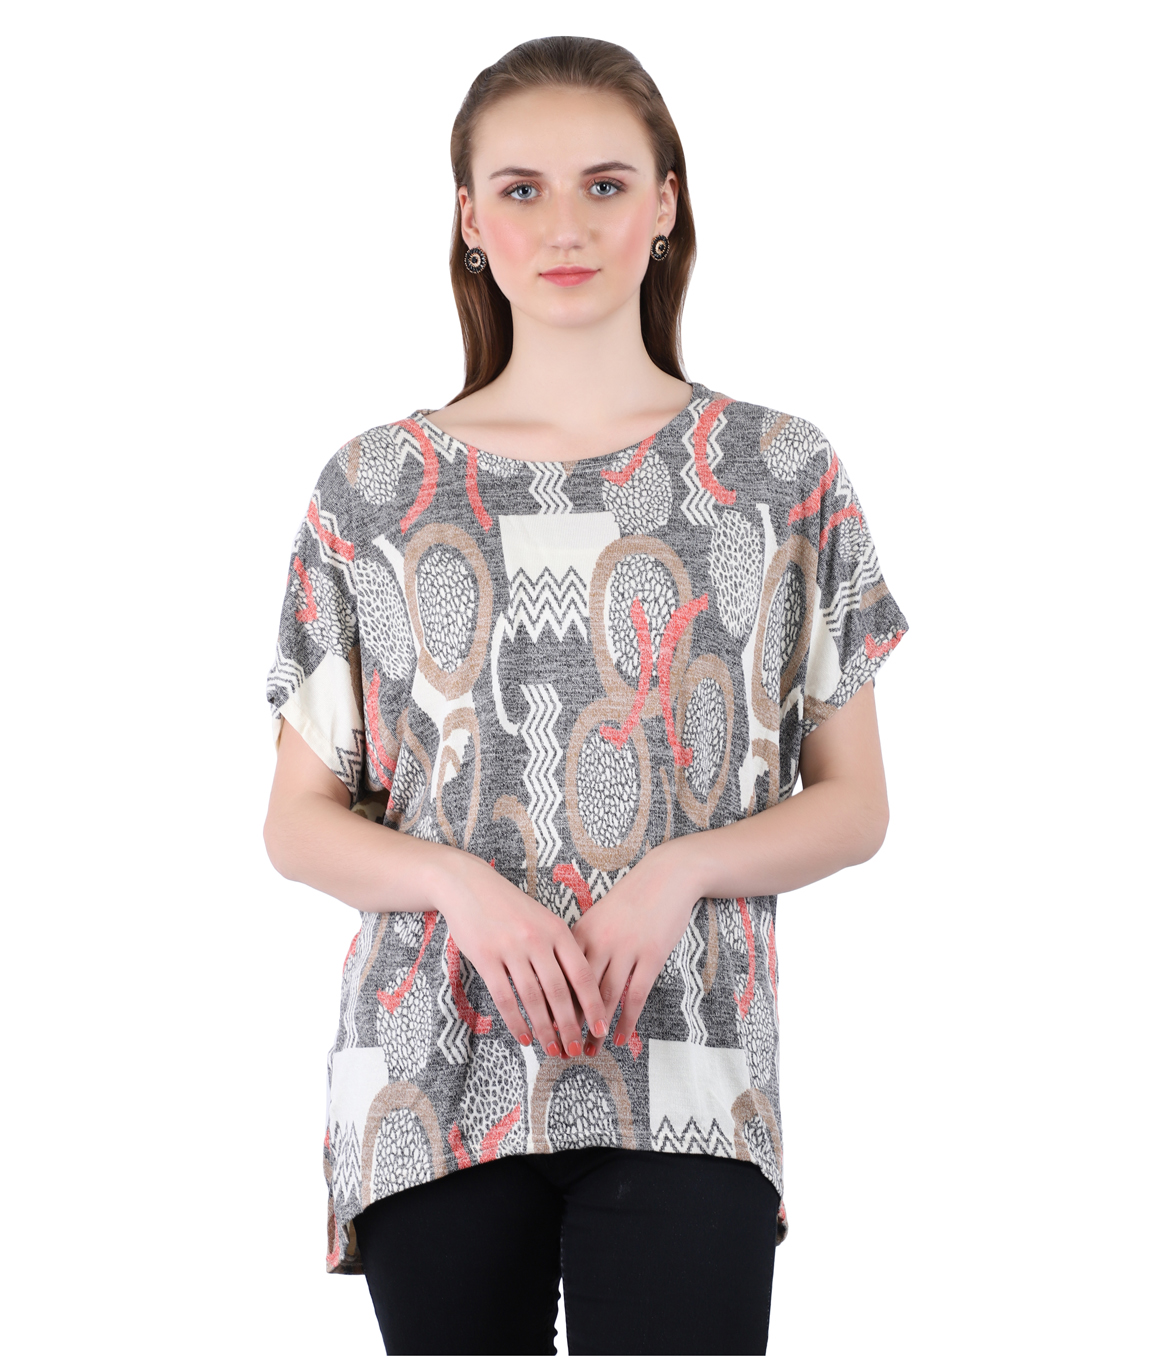 Swag women Top for Women(FREE SIZE)